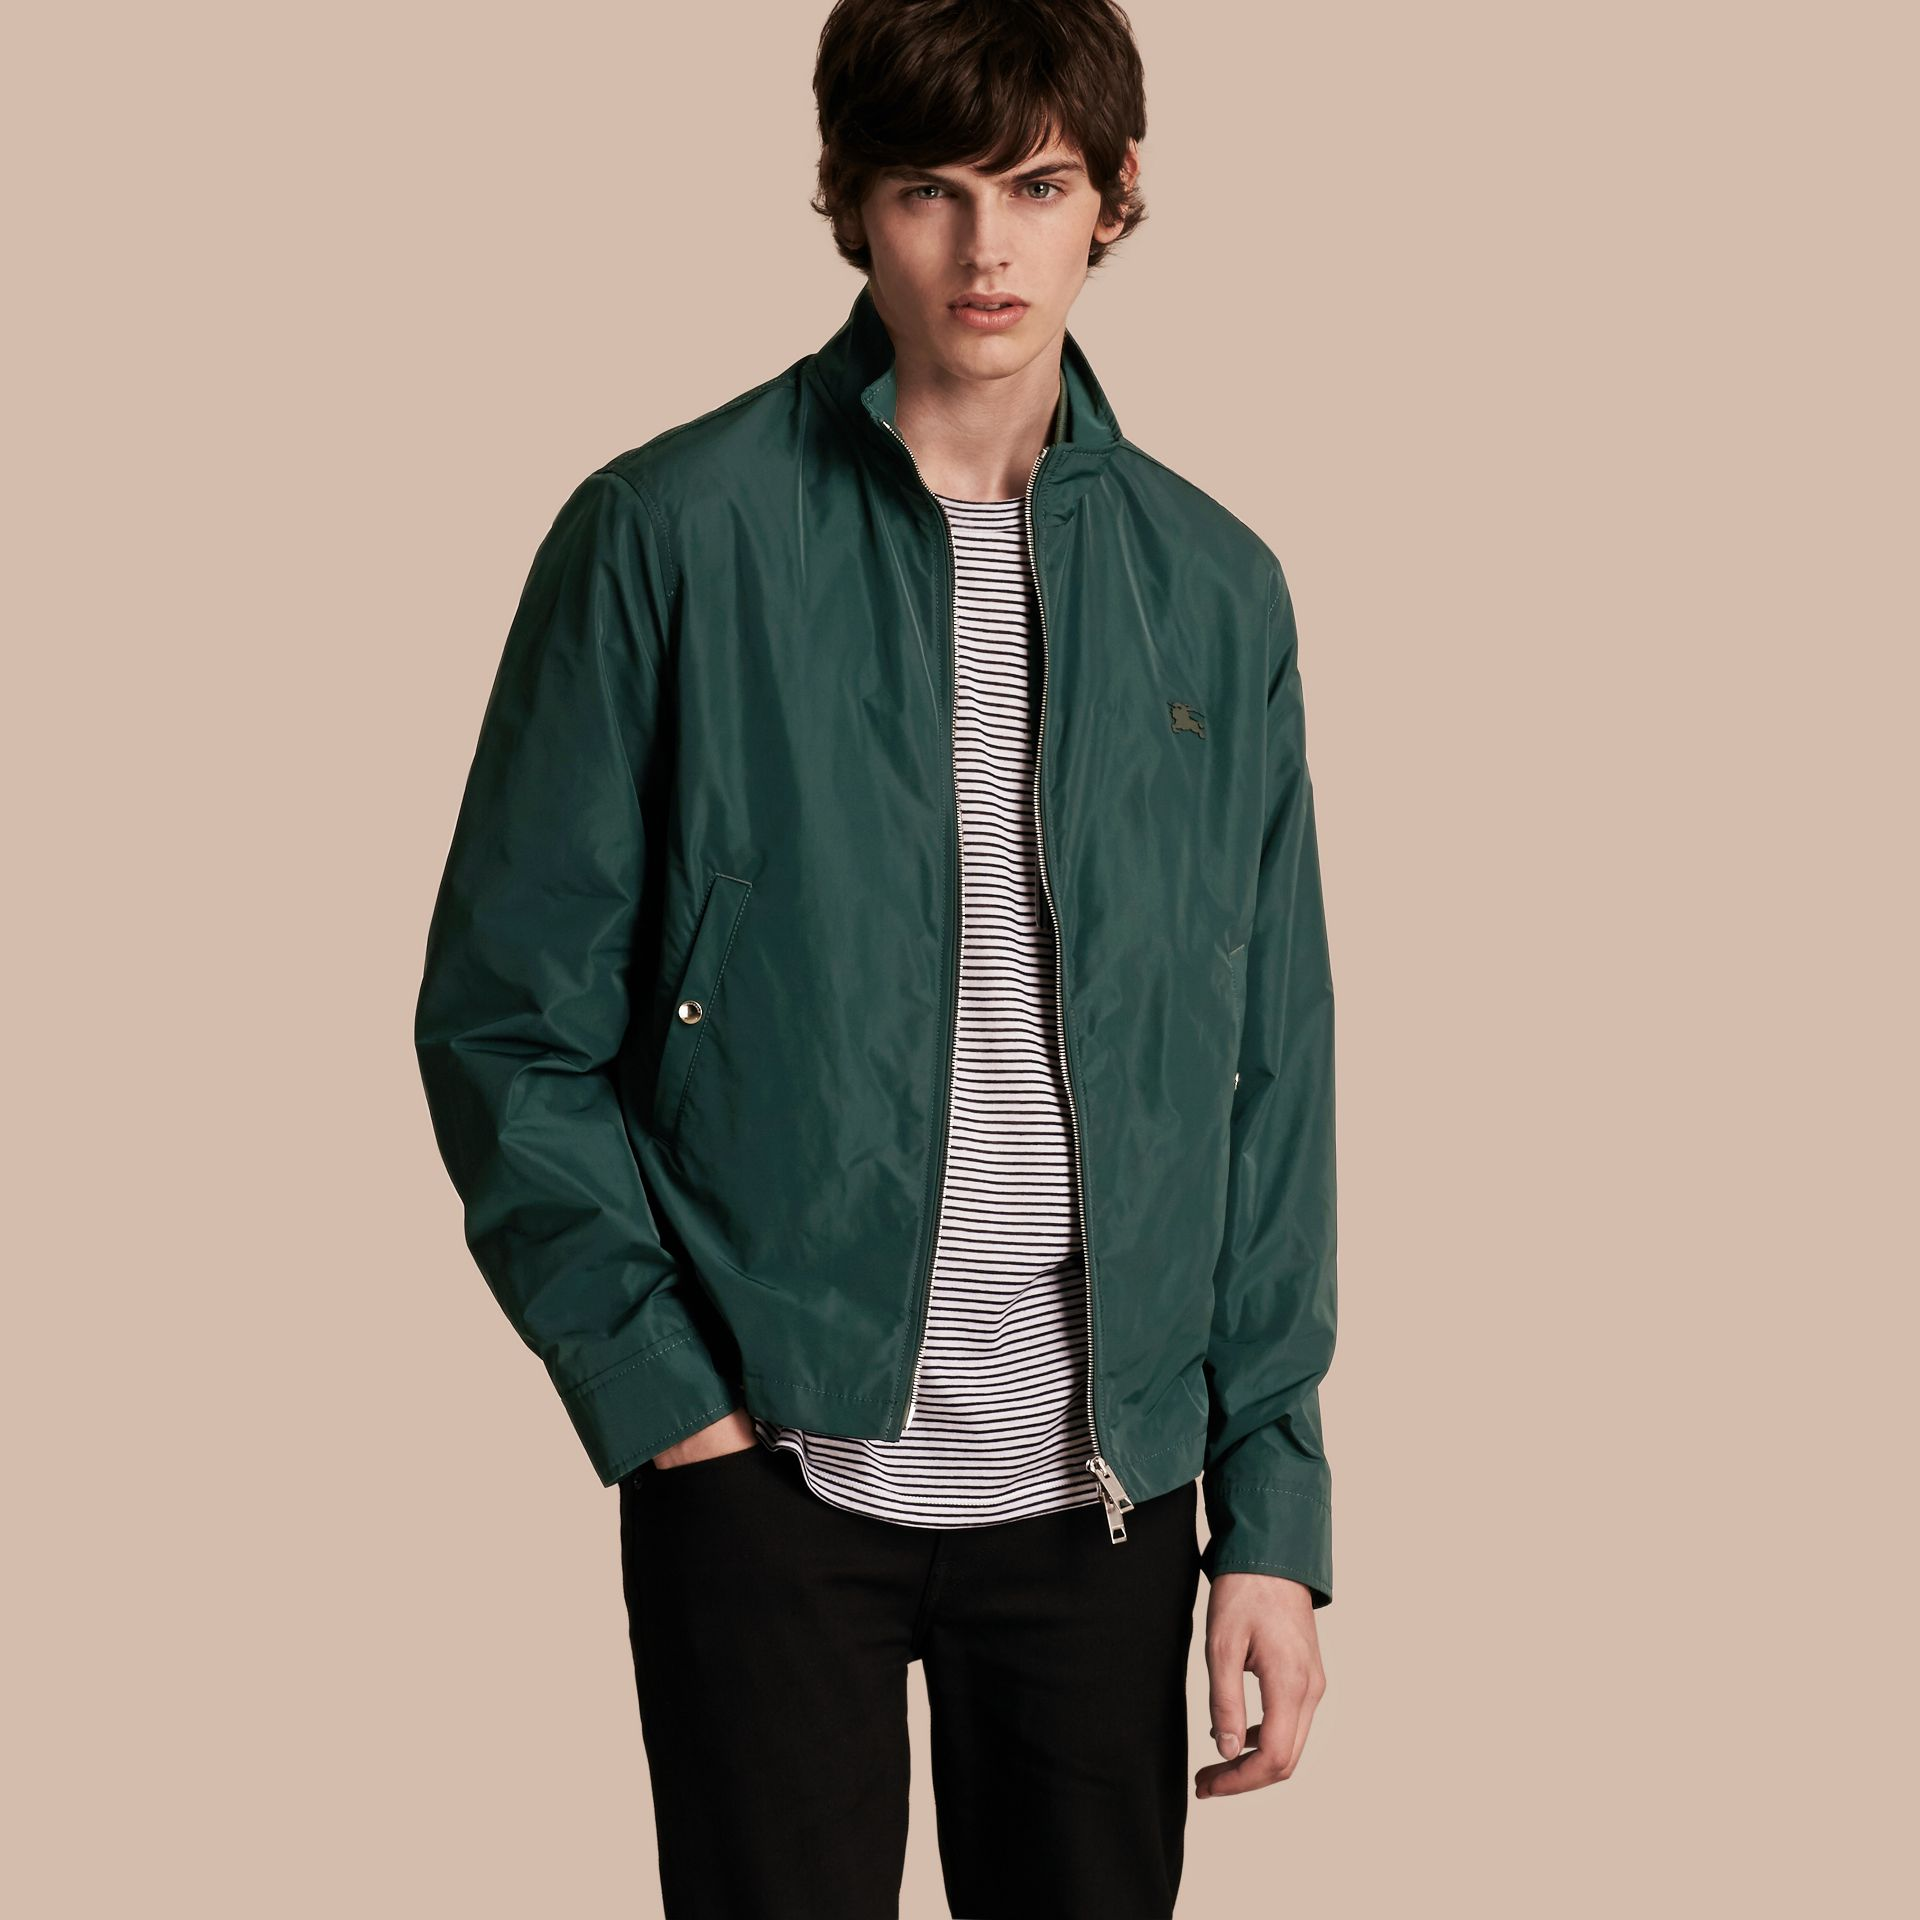 Lightweight Technical Jacket in Racing Green - Men | Burberry - gallery image 2